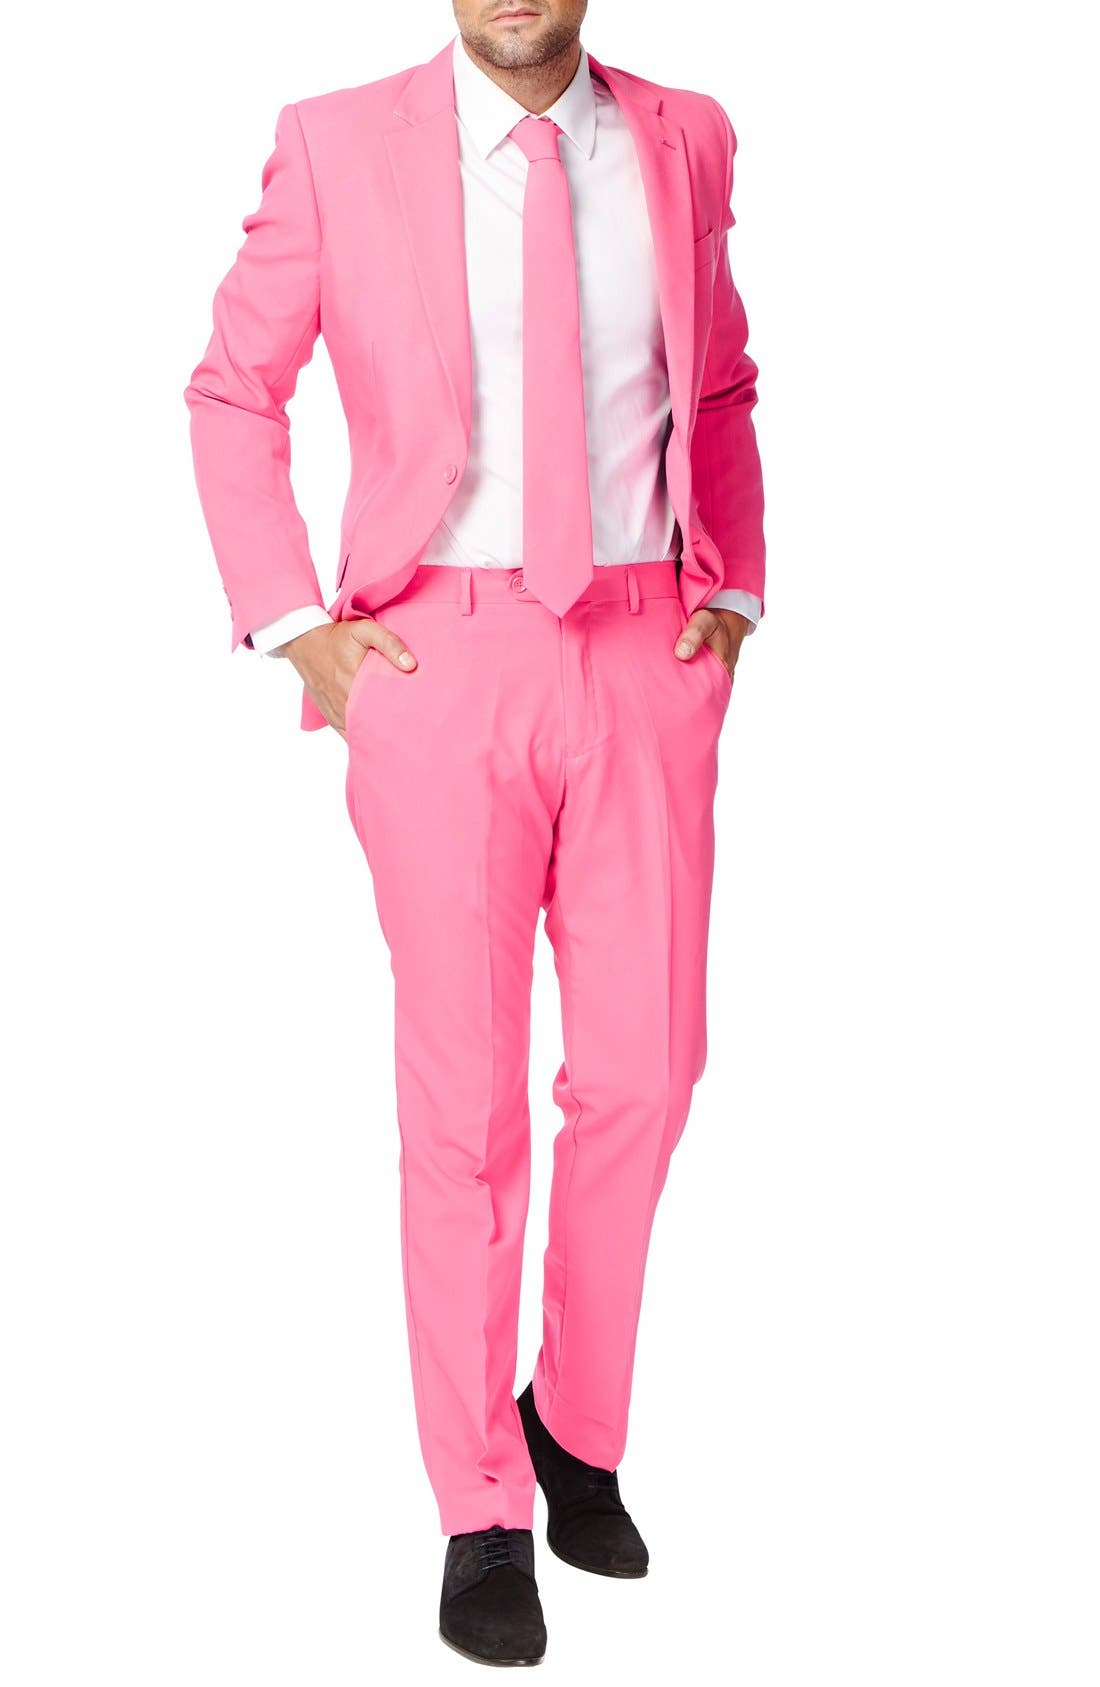 OppoSuits 'Mr. Pink' Trim Fit Two-Piece Suit with Tie